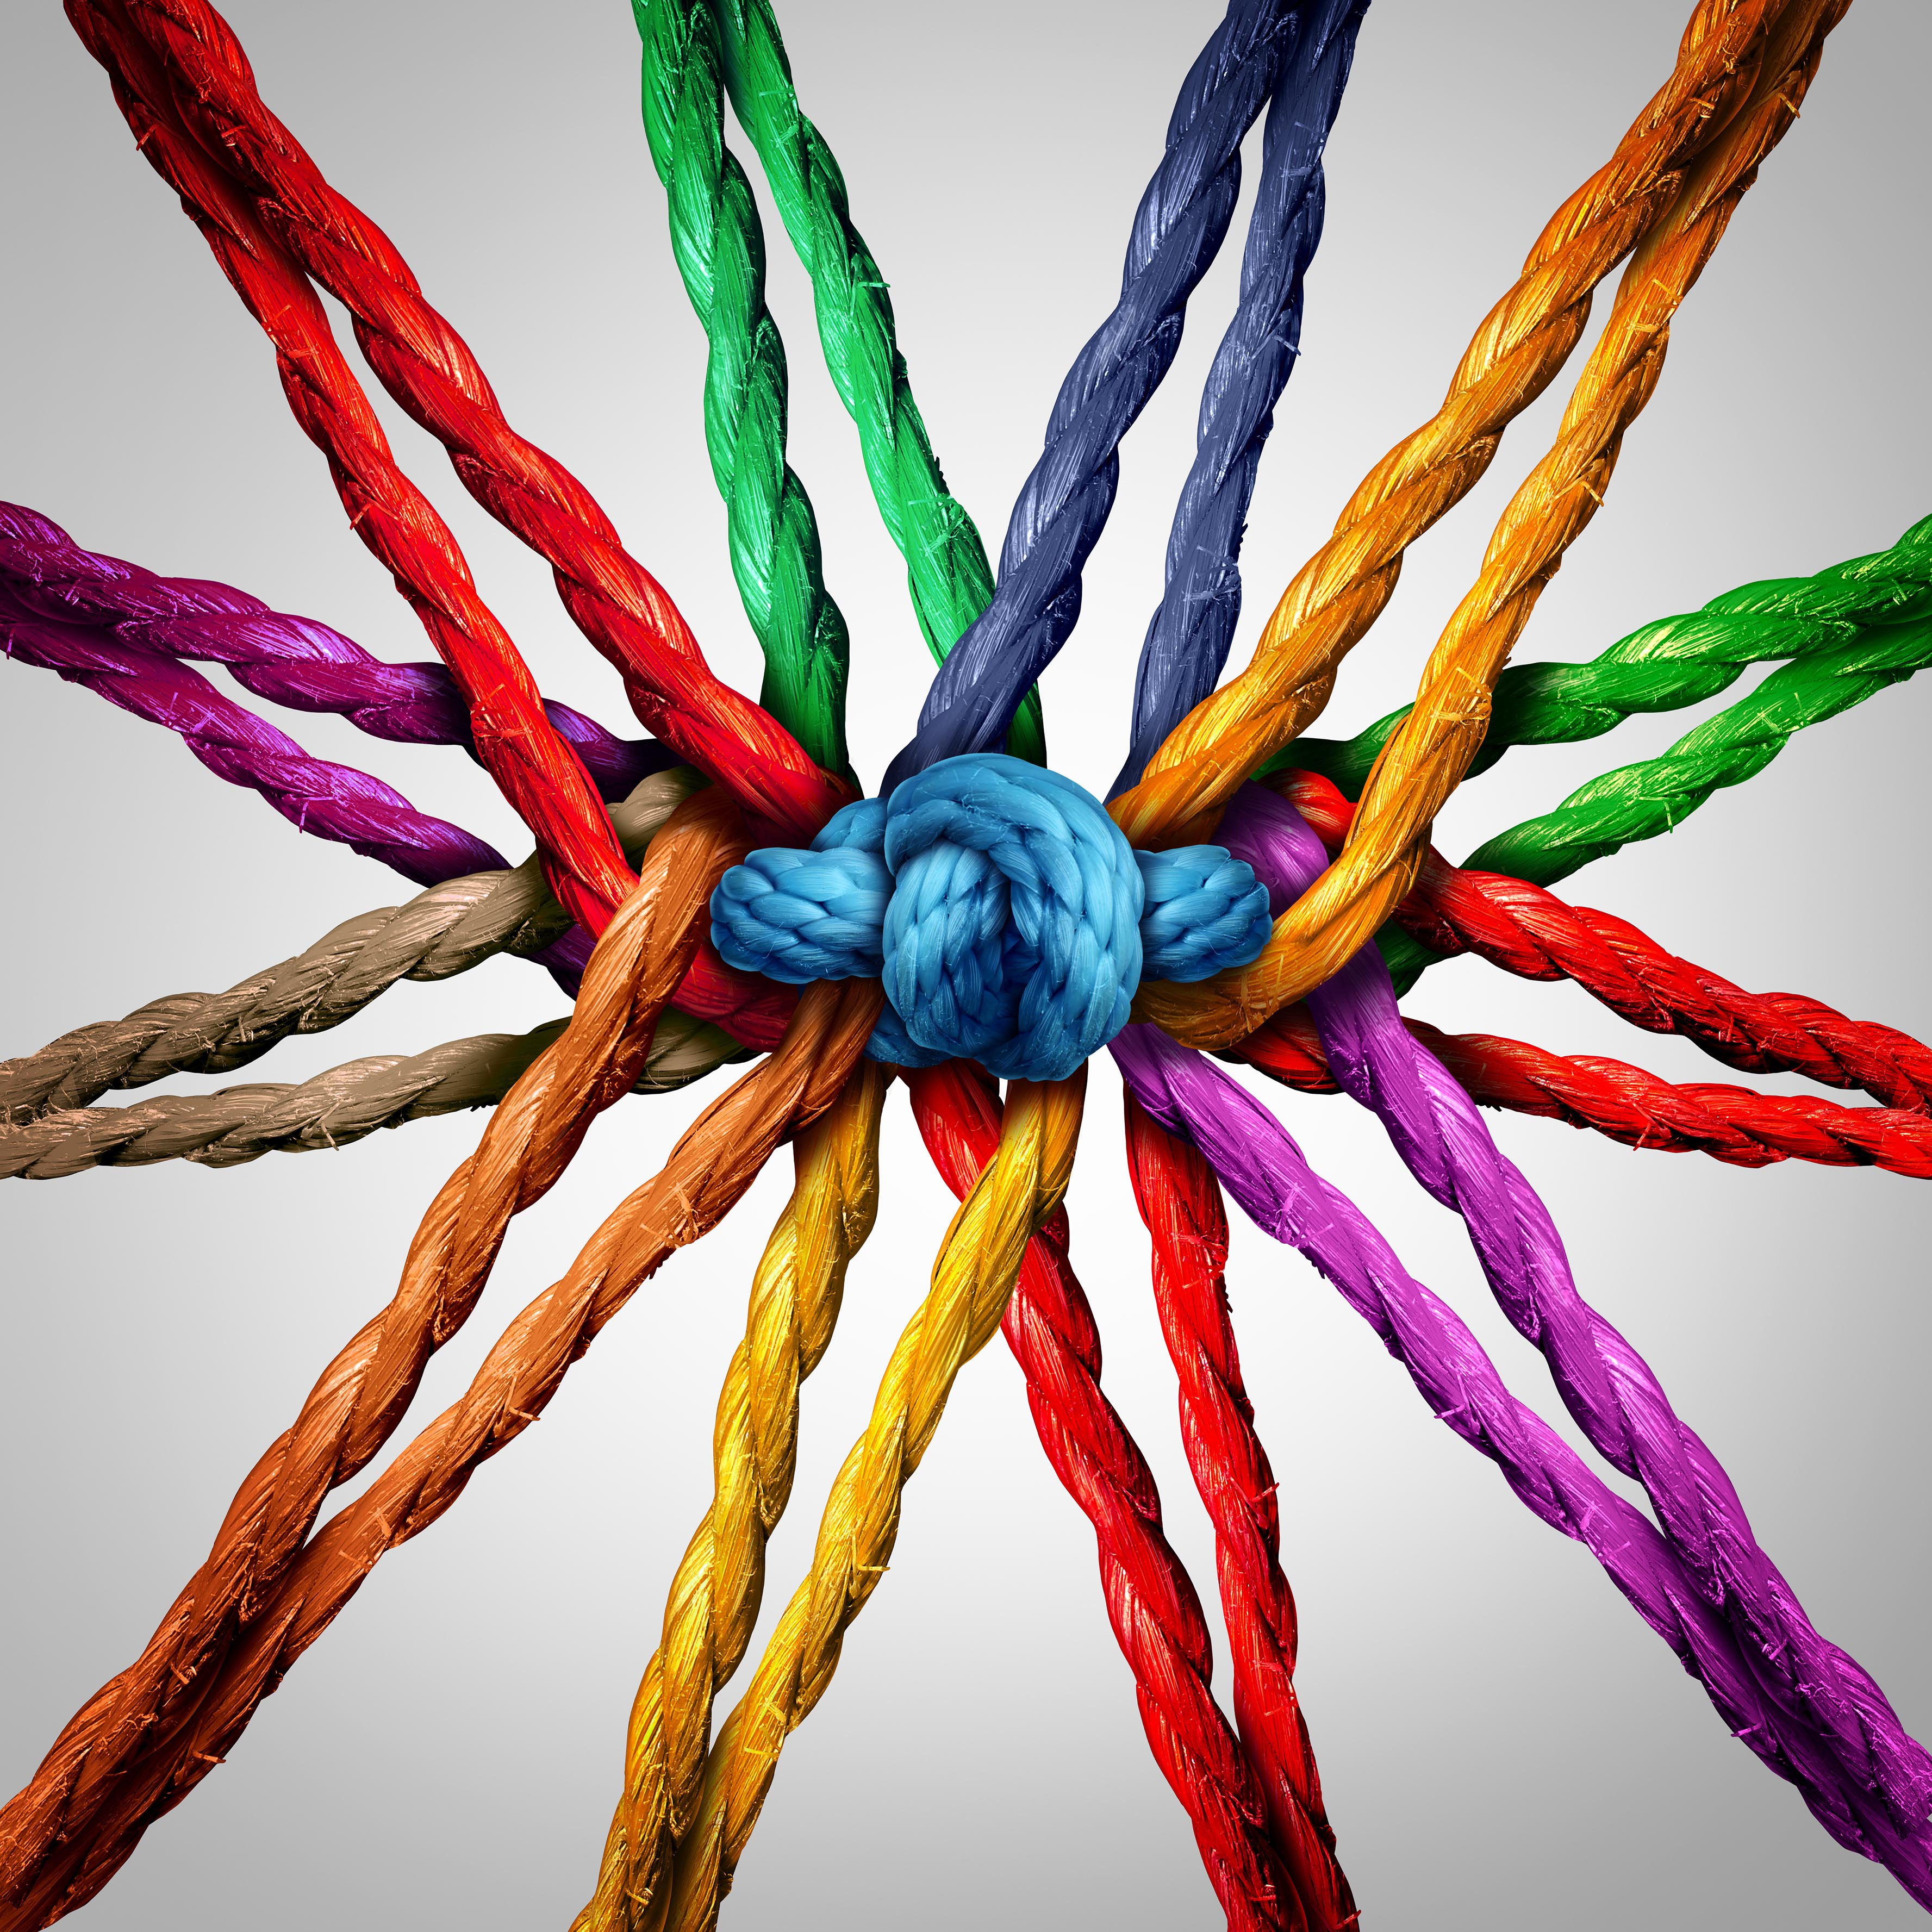 Coloured-ropes-unity-diversity-collaboration